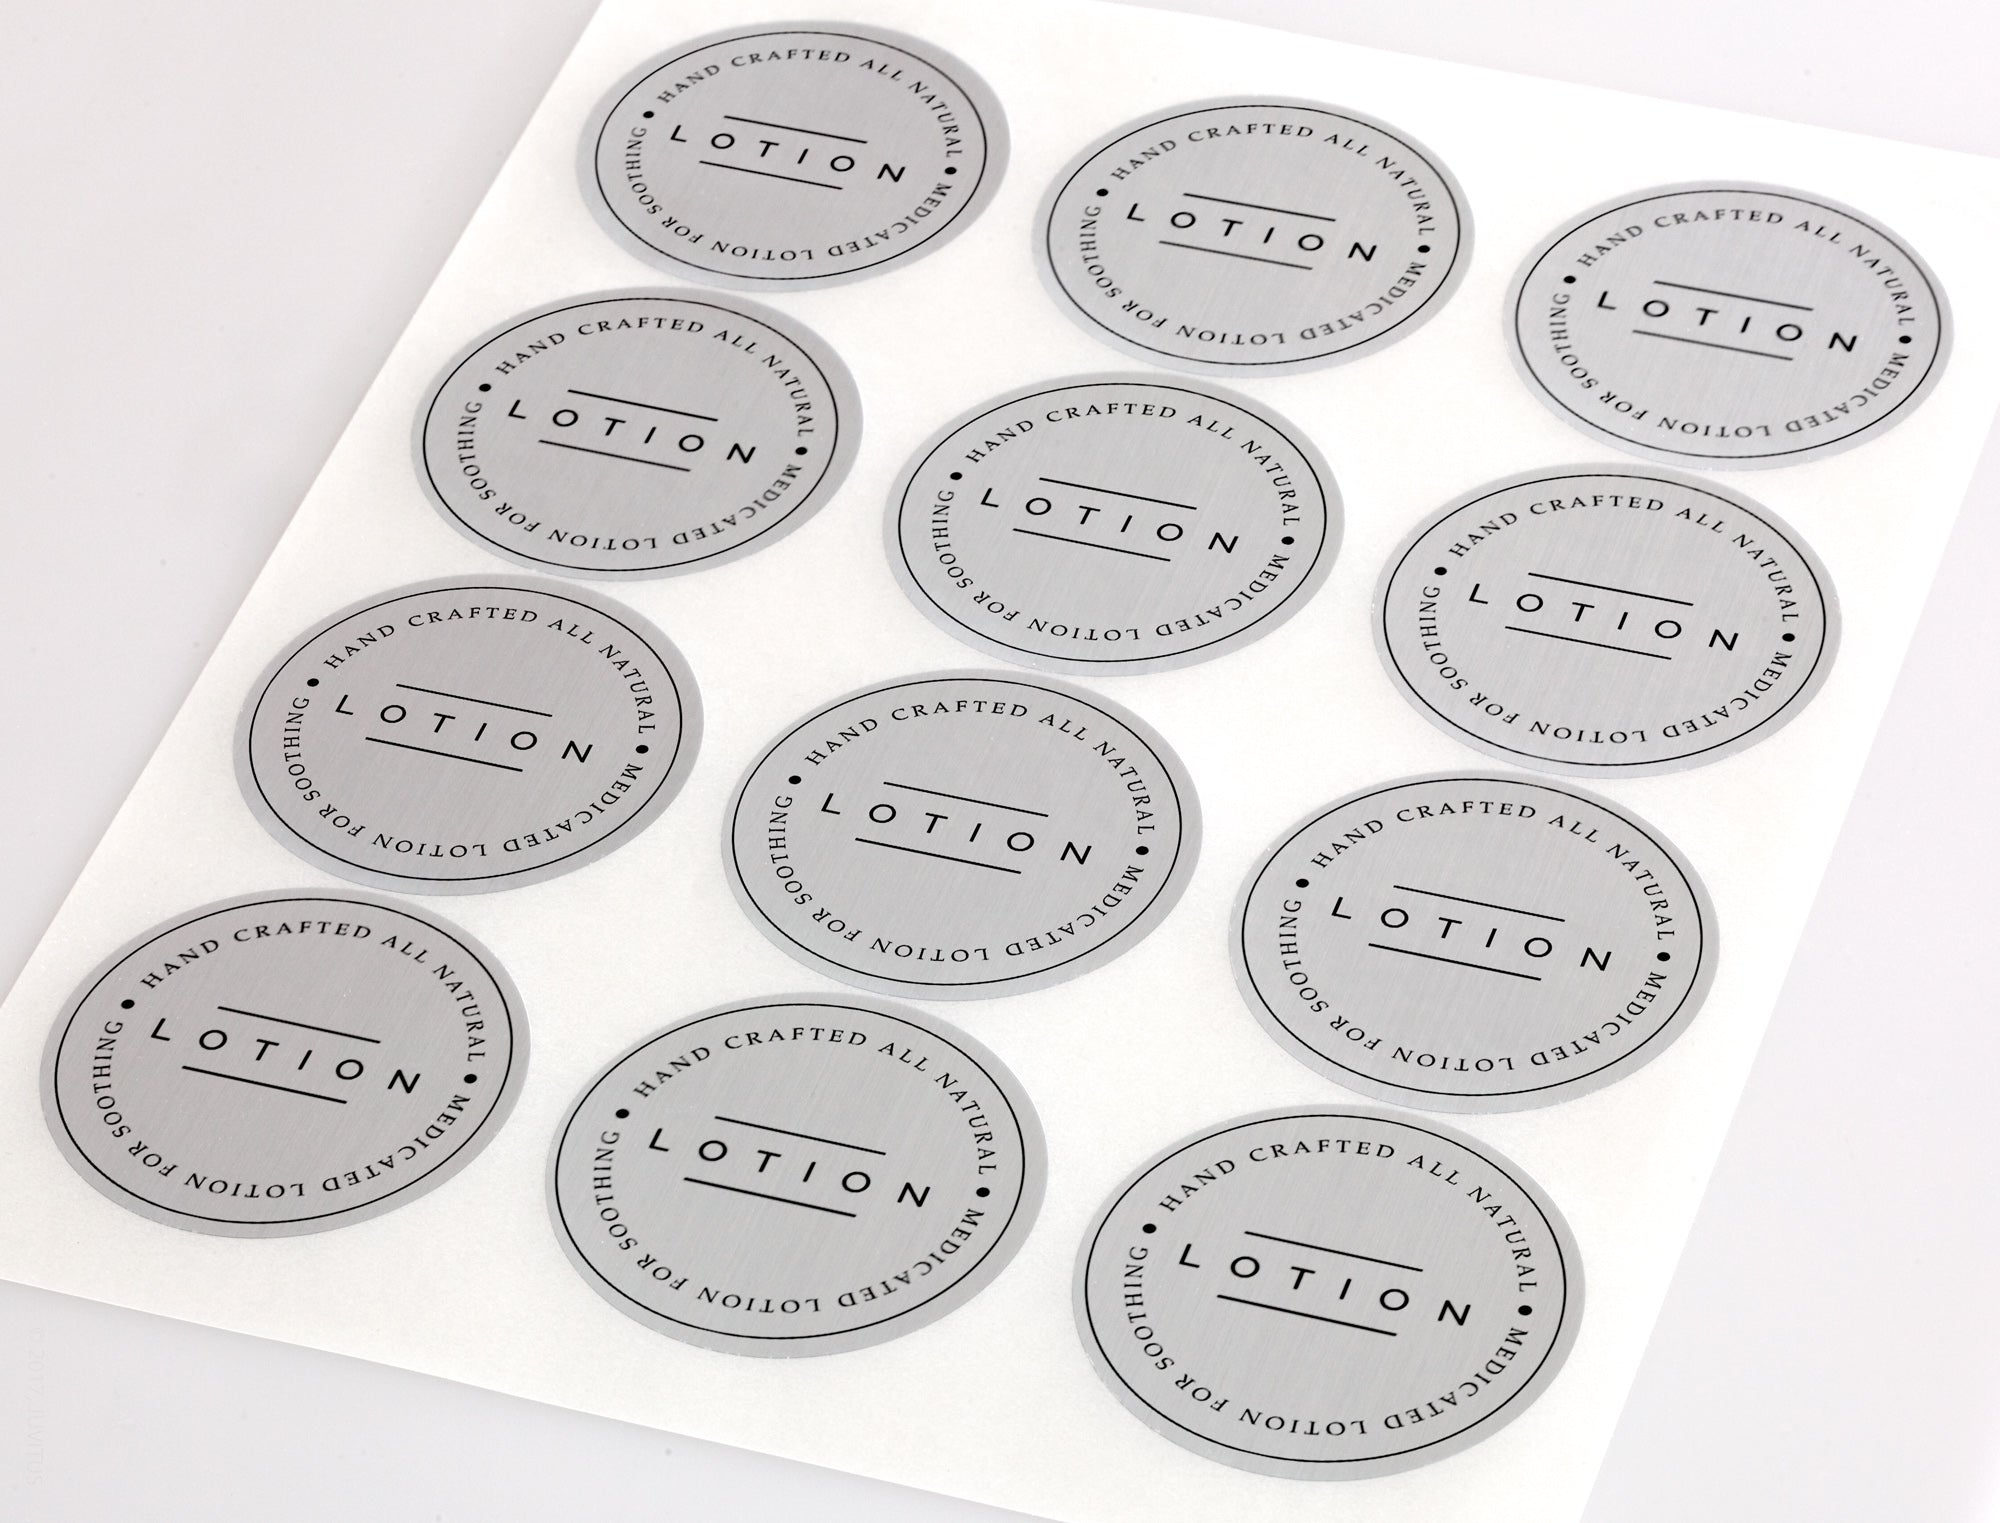 Waterproof Silver Foil 2 5 Inch Diameter Round Labels for Laser